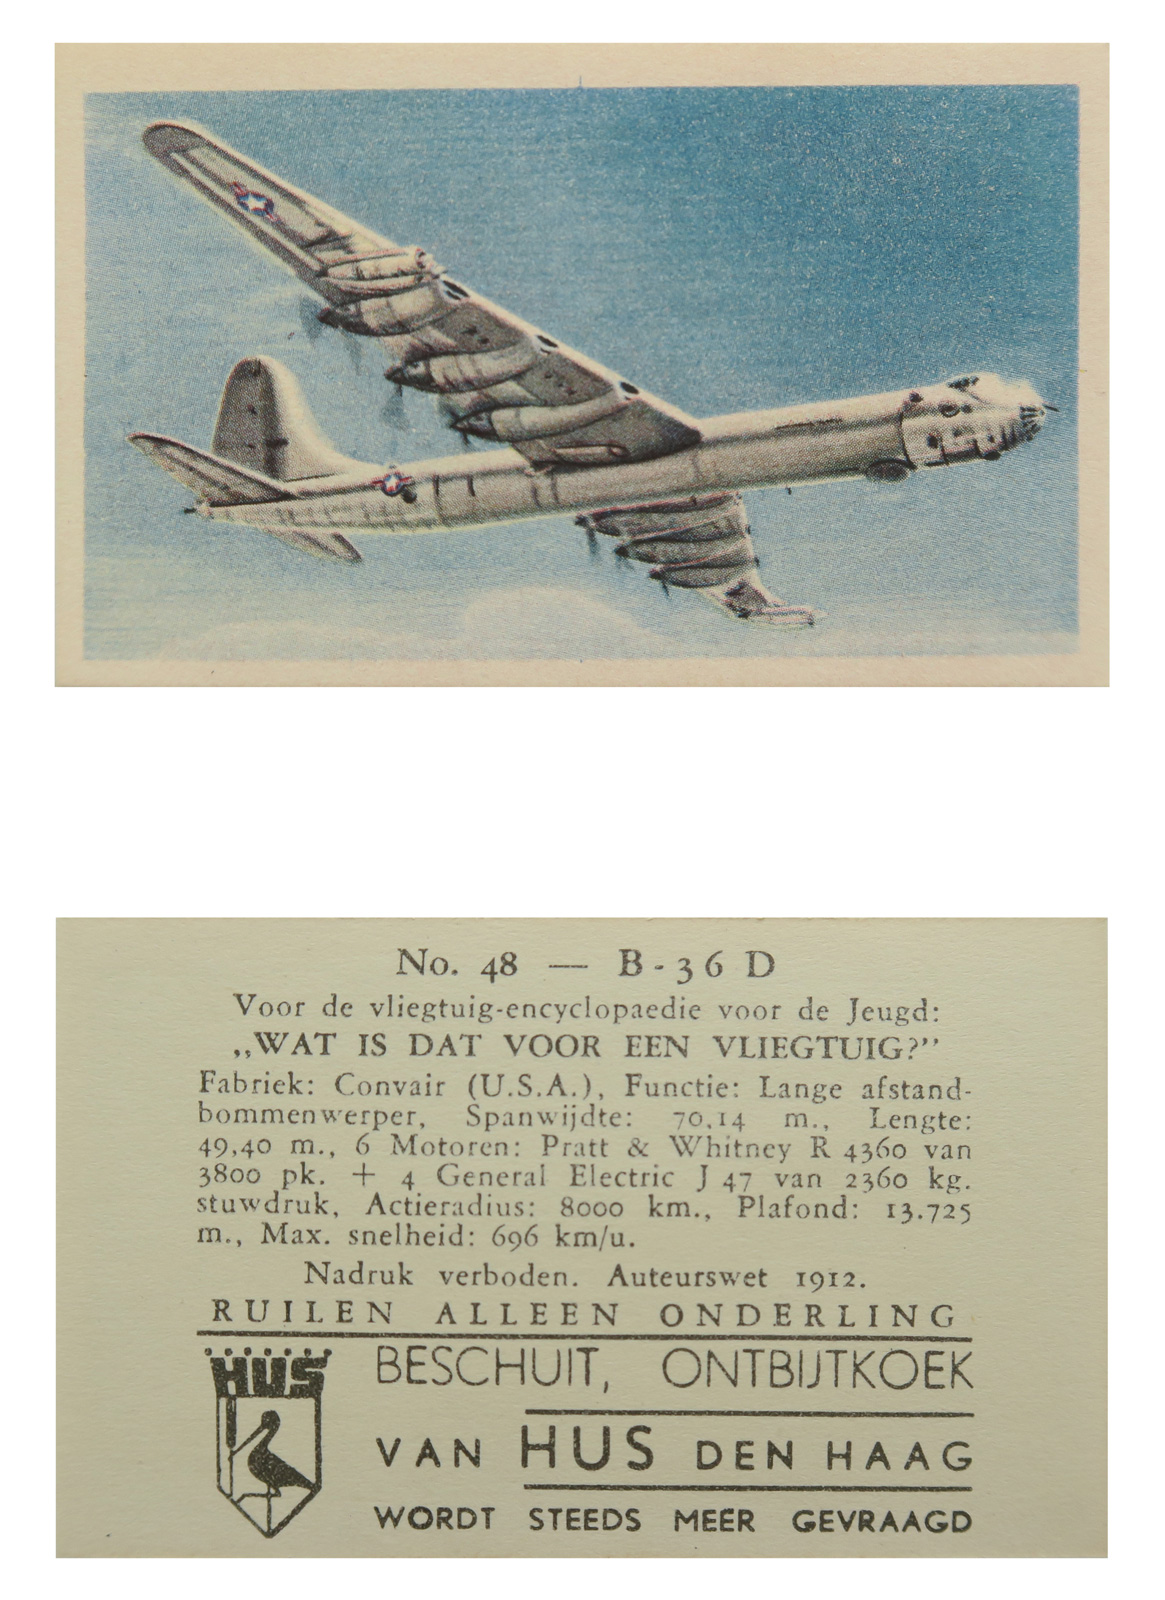 B-36D Bomber #48  Series: Wat is dat voor vliegtuig (What kind of plane?) Manufacture: Van Hus Den Haag packaged in Beschuit Ontbijtkoek (Gingerbread Biscuits) Card Dimensions: 3.123 x 1.875 inches Netherlands - 1956